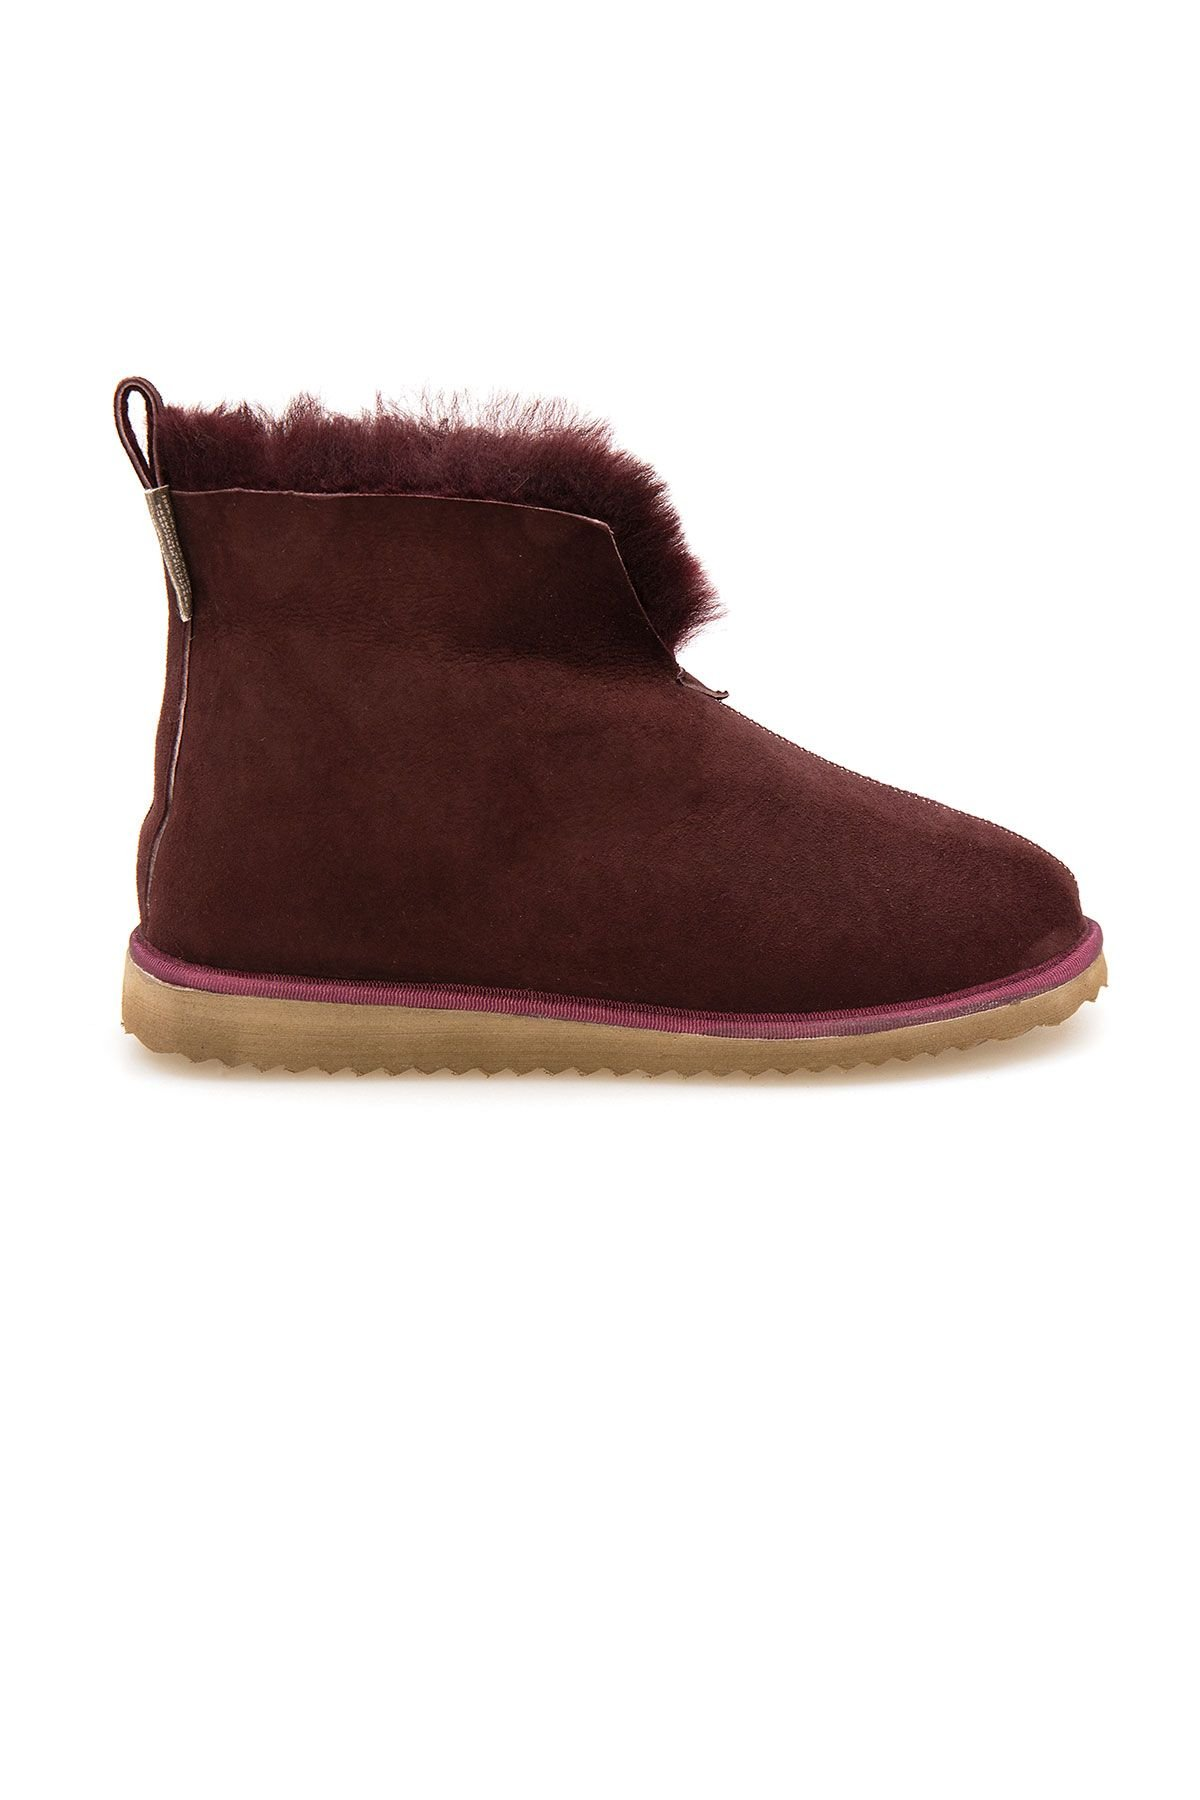 Pegia Sheepskin Women's House Boots 191200 Claret red